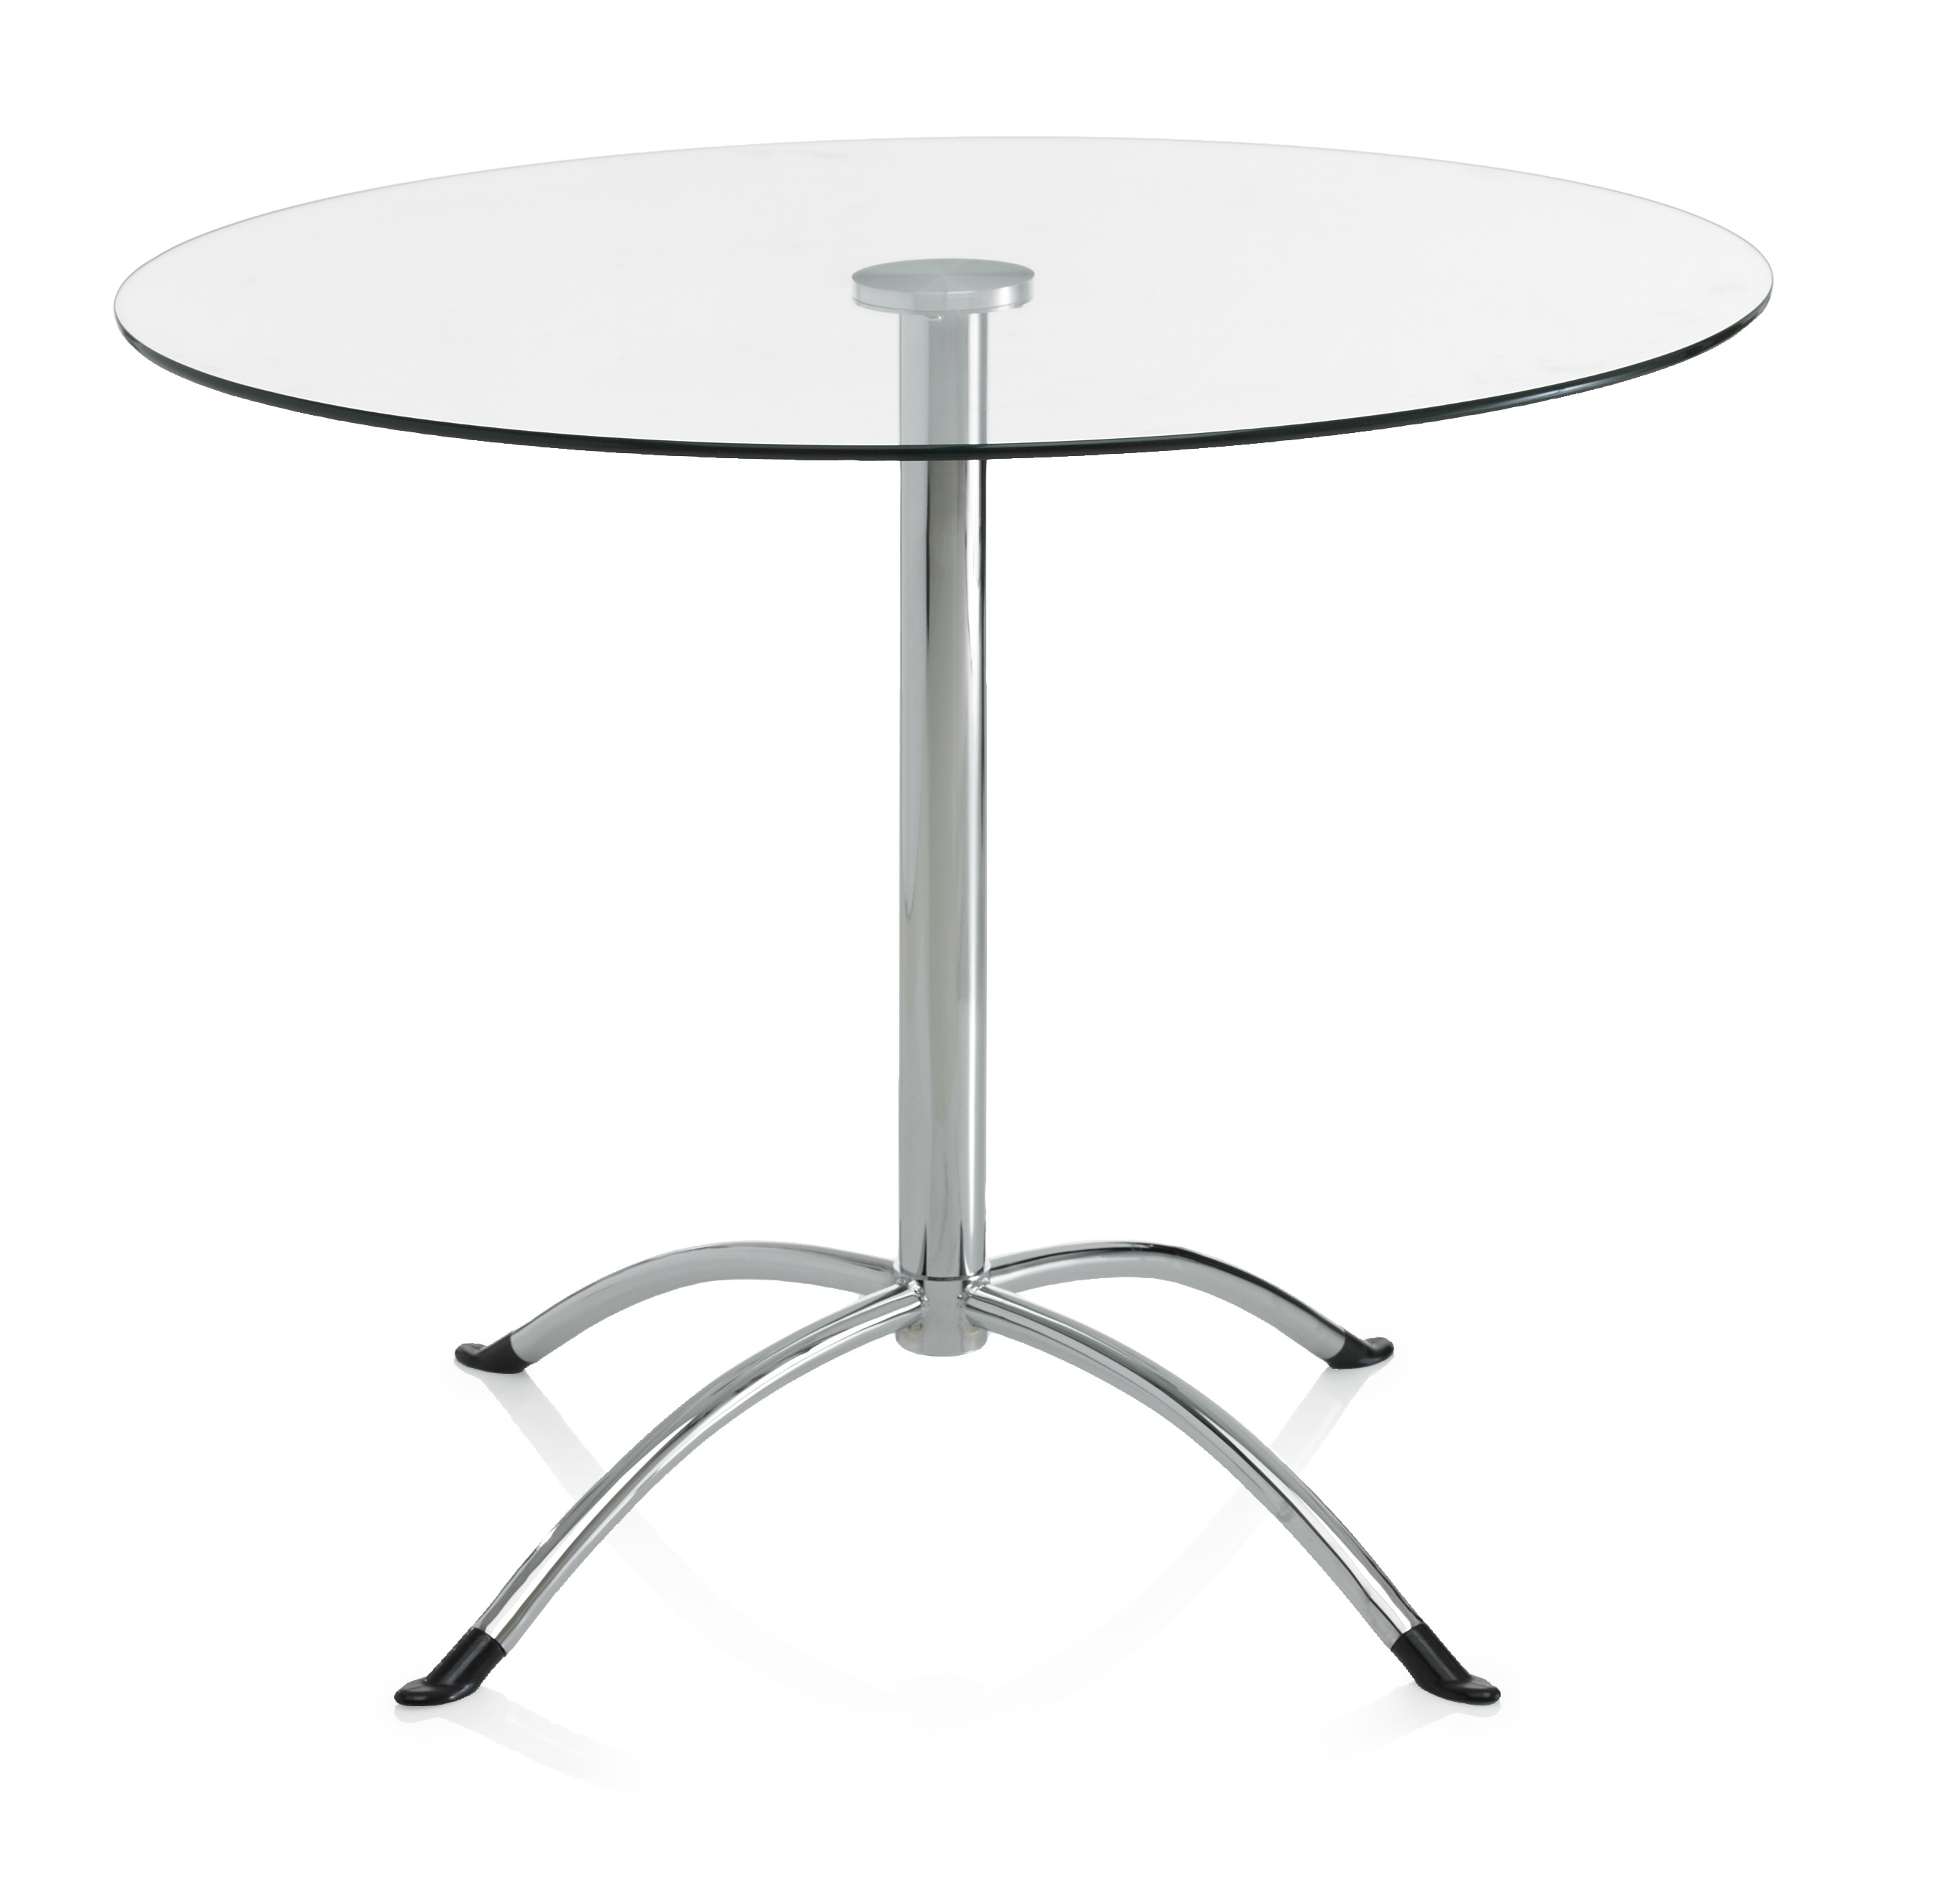 Monza Glass Top Dining Bistro Table Round 4 Seater Kitchen Furniture ...